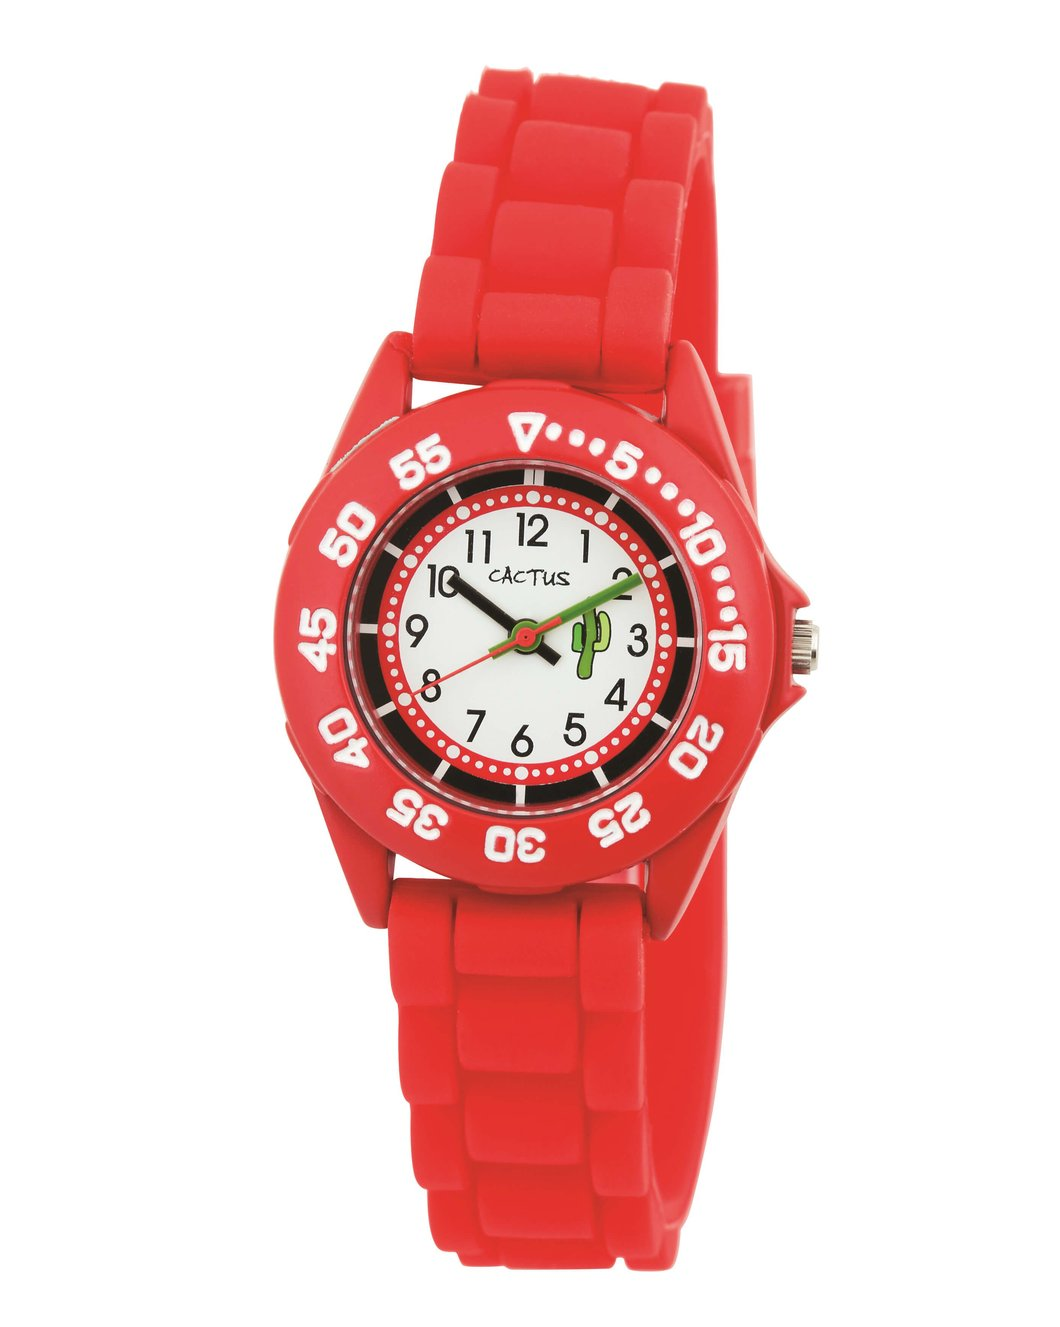 CACTUS Watches - Beach Bright - Sporty Youth / Kids - Red - CAC-58-M07